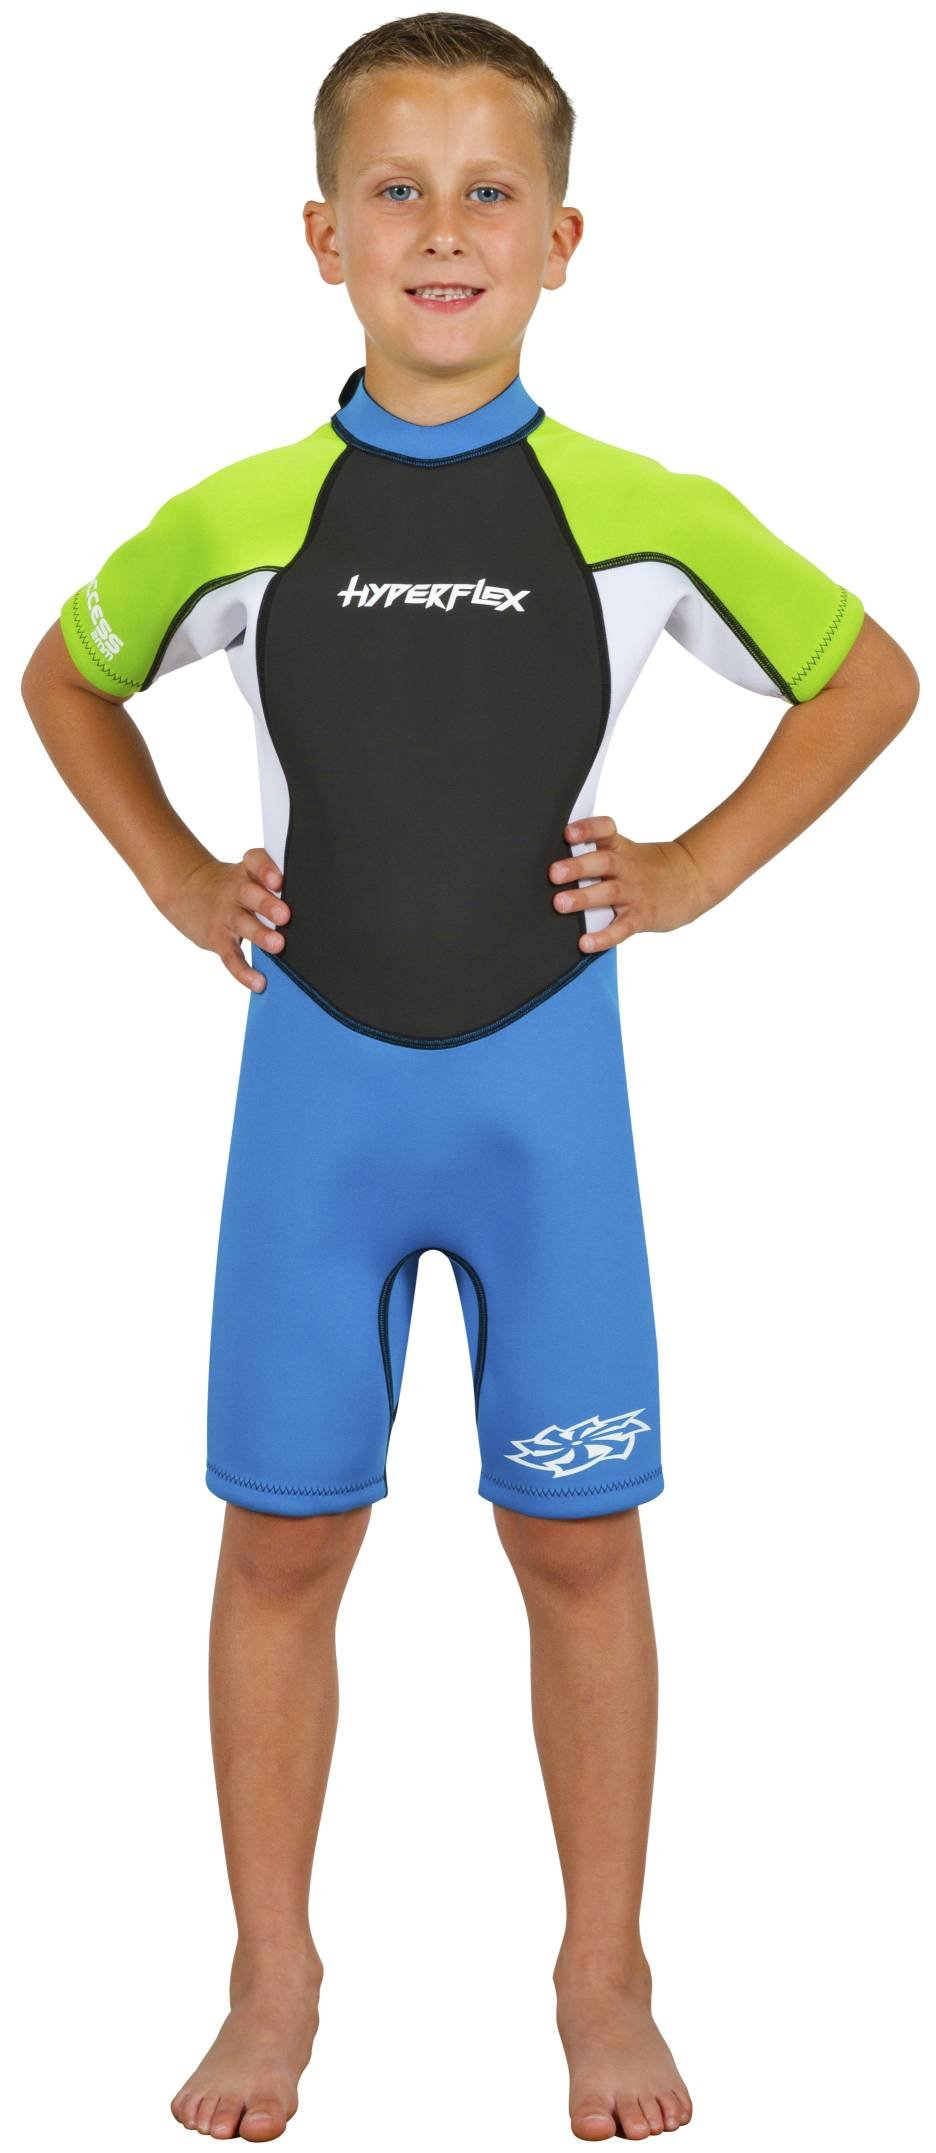 Hyperflex Access Child's Backzip Shorty Wetsuit - Warm, Comfortable Kid's Springsuit with 4-Way Stretch Neoprene and SPF Protection - Adjustable Collar and Flat Lock Construction,(Green Blue, 4) by Hyperflex